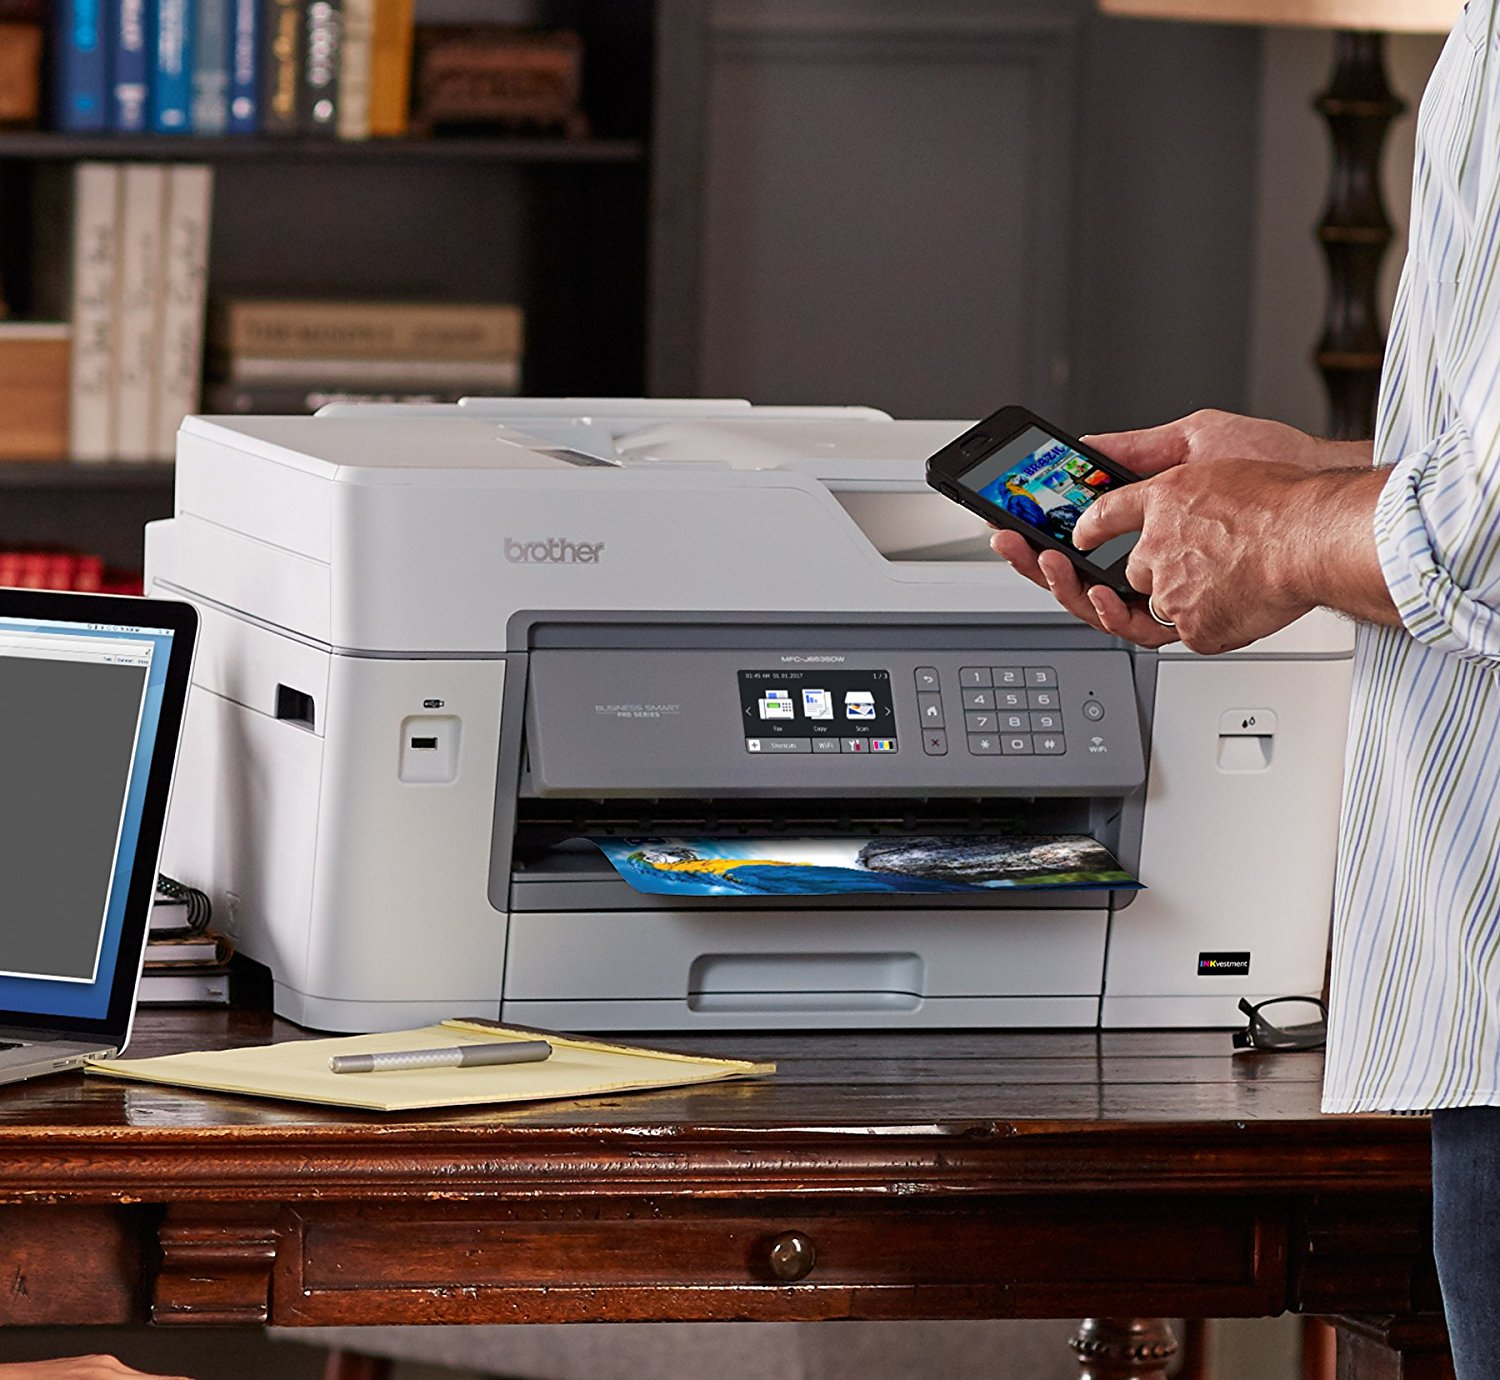 Best Airprint Printer of 2019 | ArtsDel